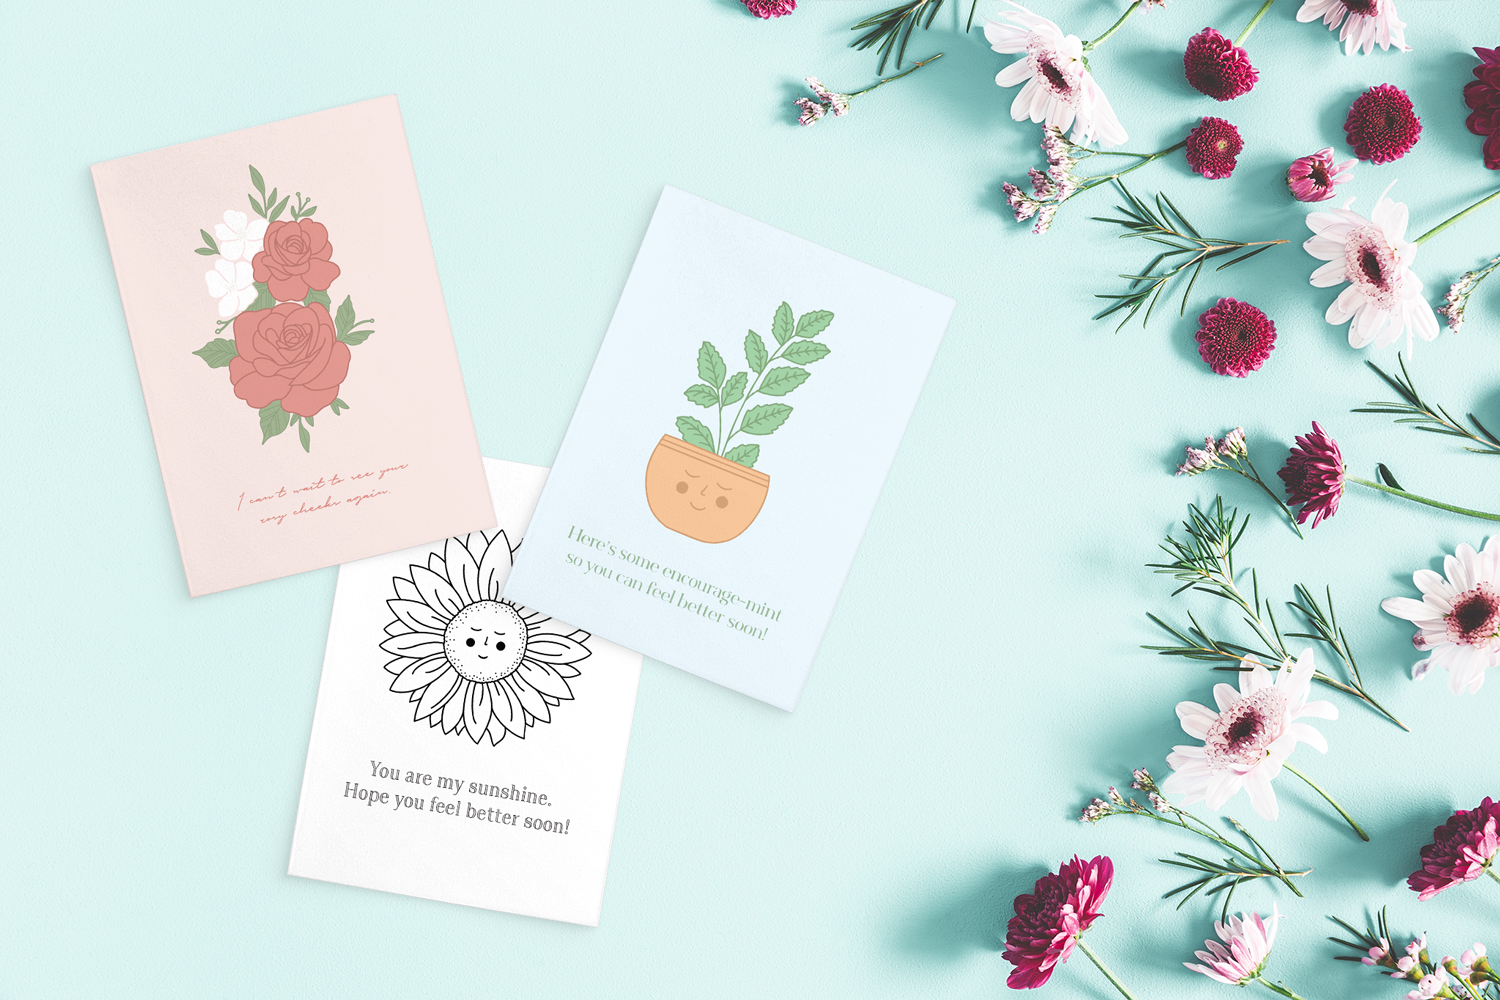 printable get well cards on turquoise background with red and pink flowers